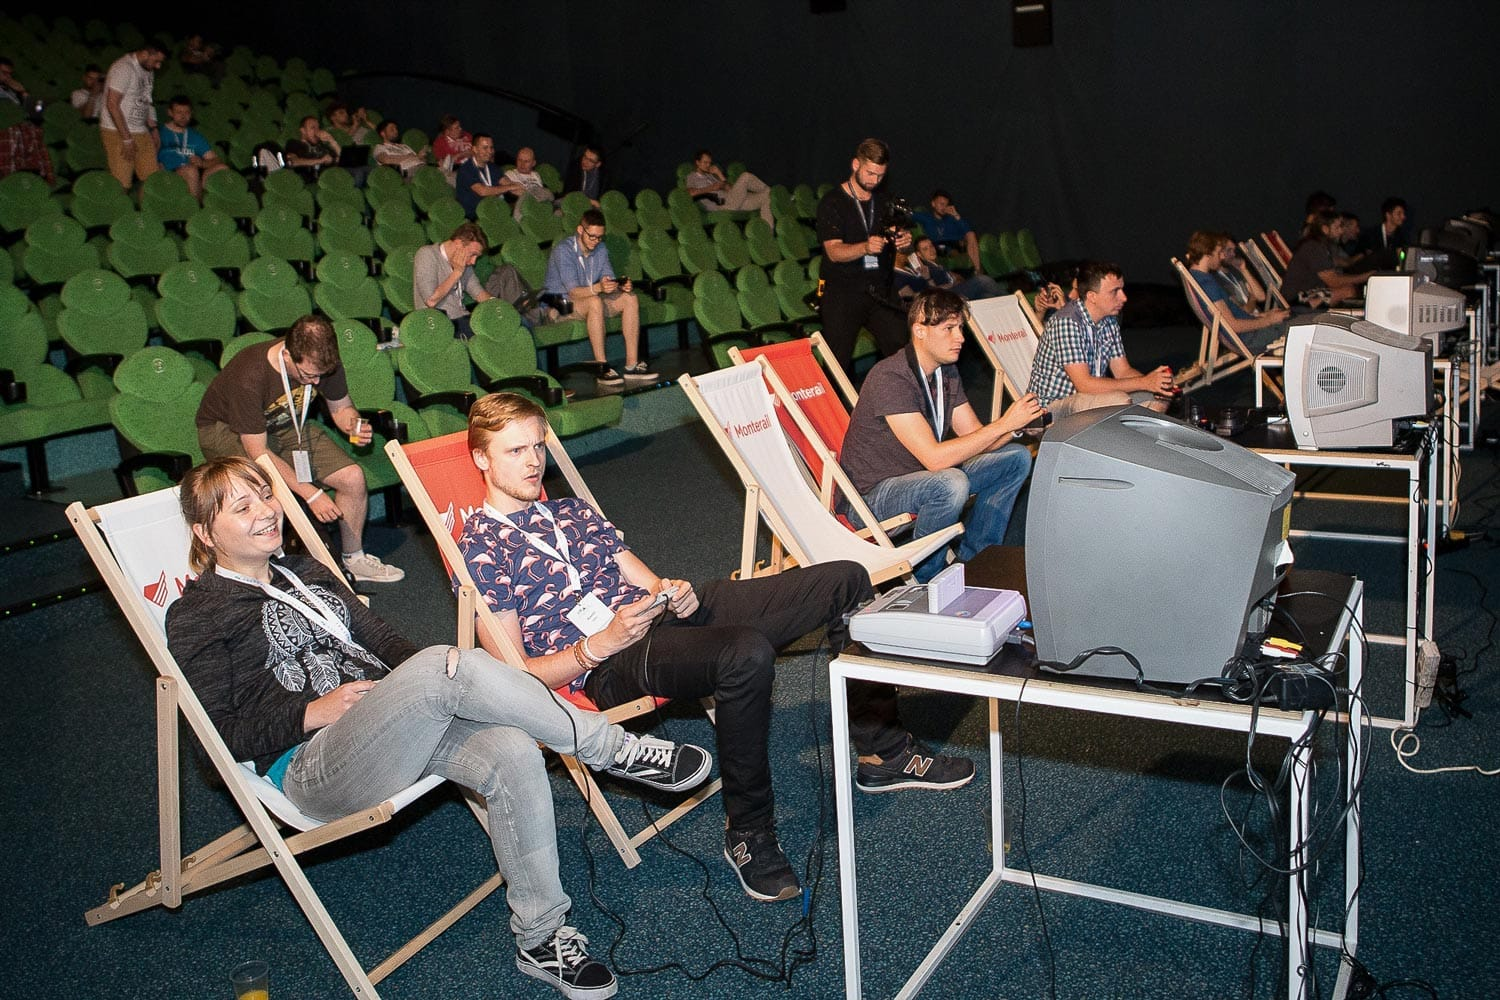 Gaming room during VueConf